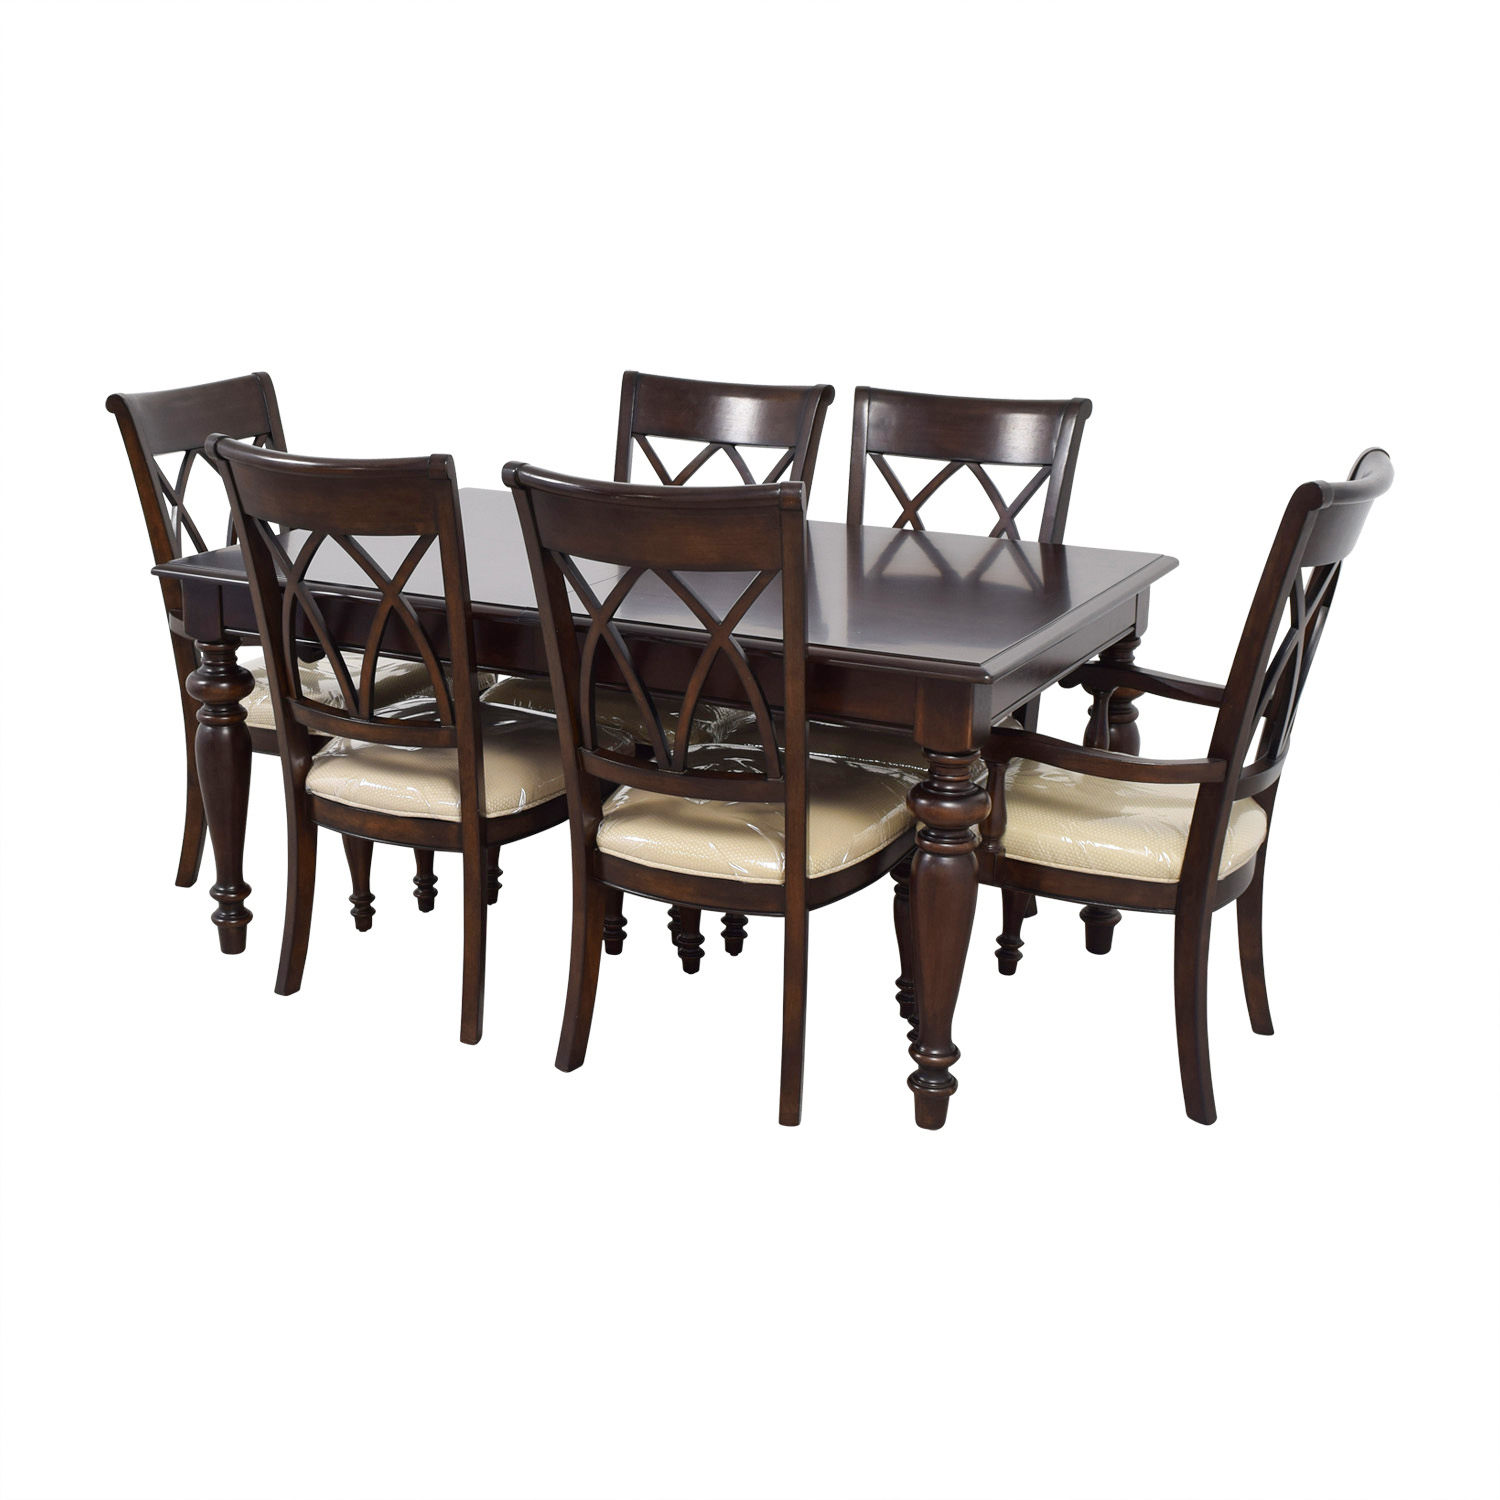 macys dining chairs wooden slat 68 off macy 39s wood set with beige